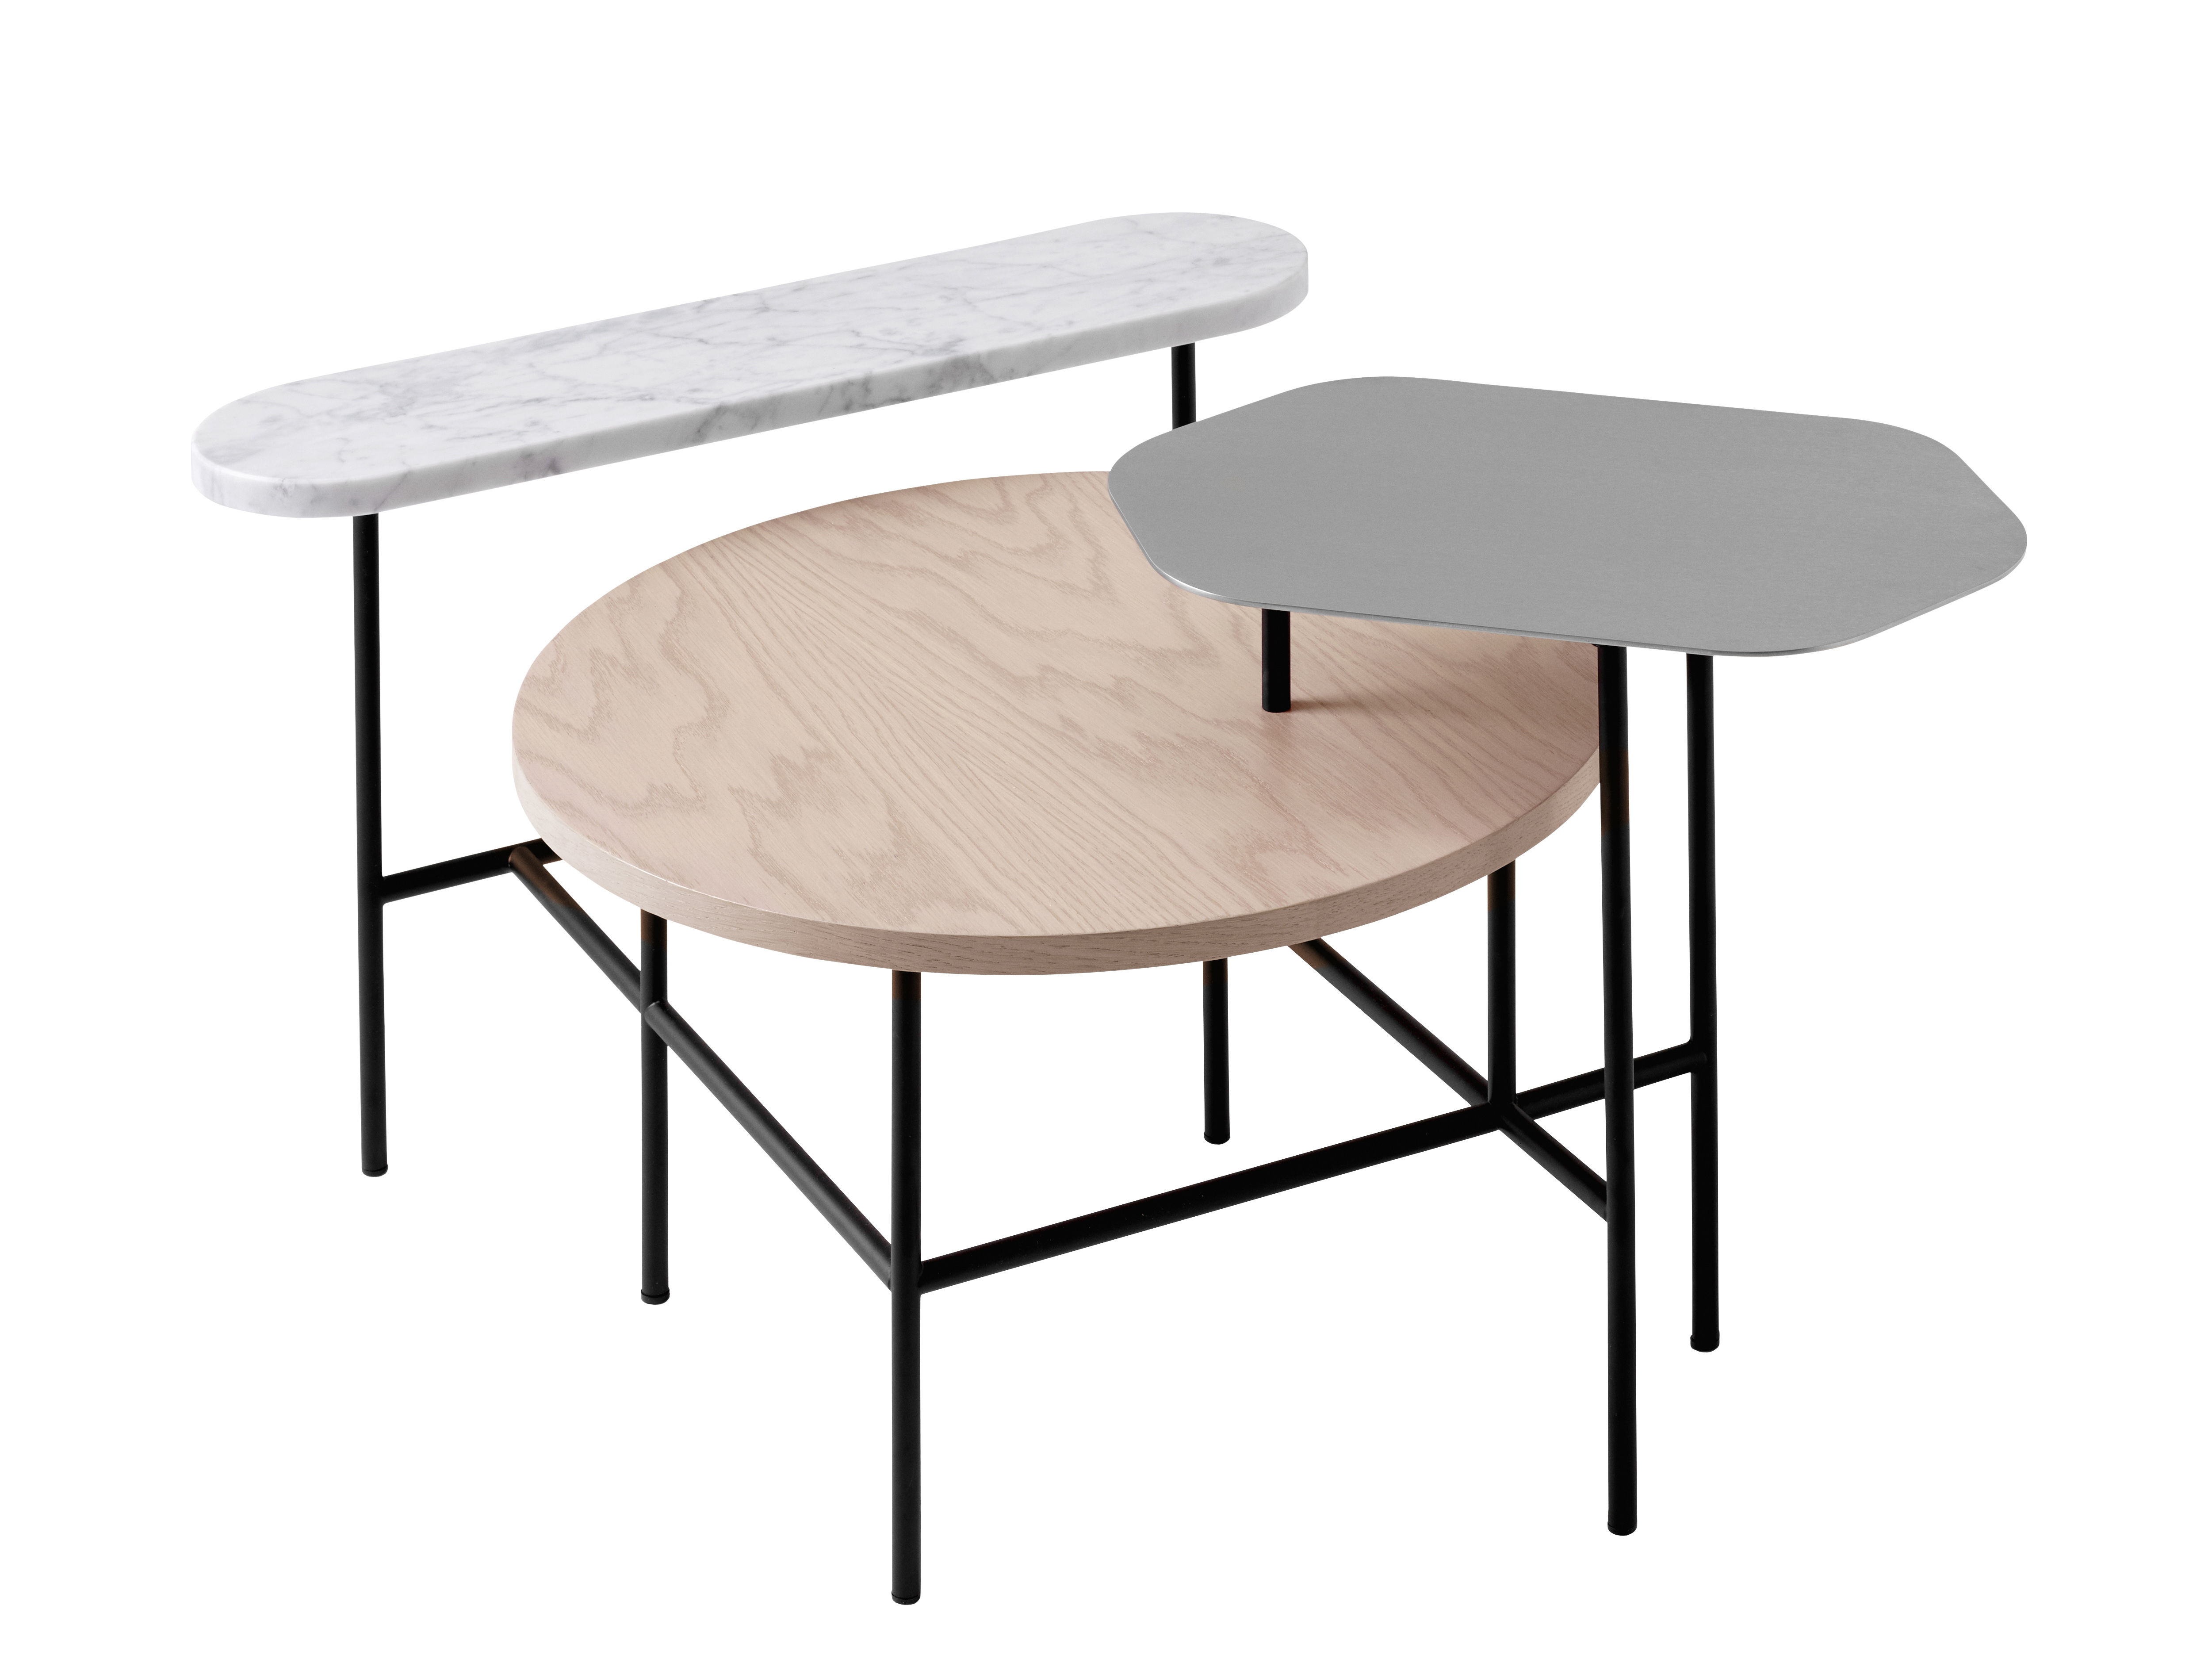 Table basse palette jh6 3 plateaux rose argent blanc for Table basse scandinave rose